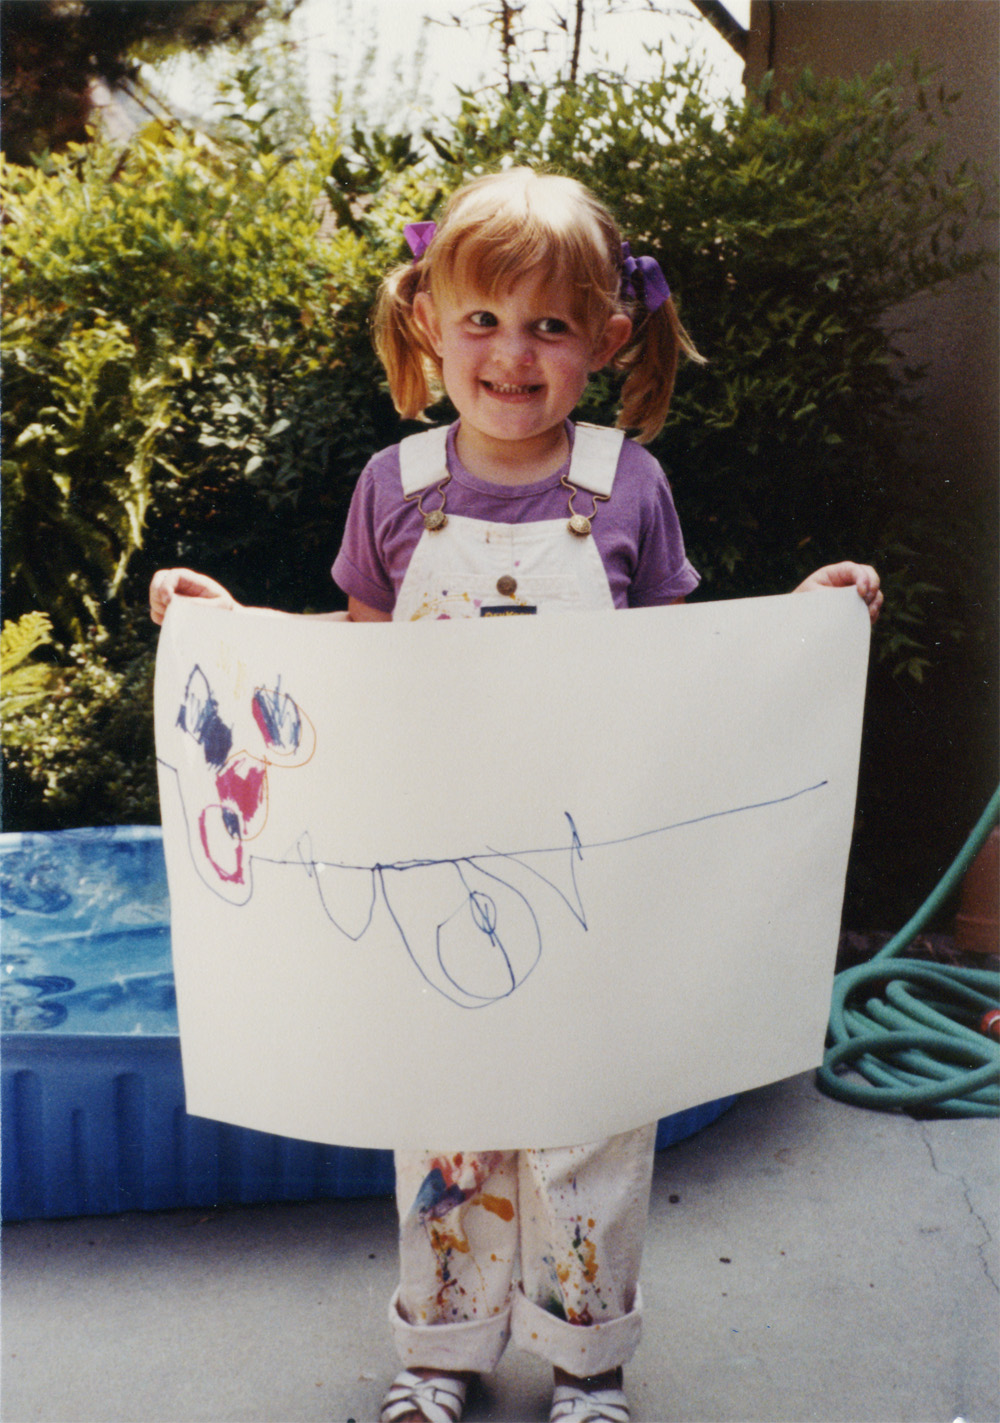 Always wanted to be an artist